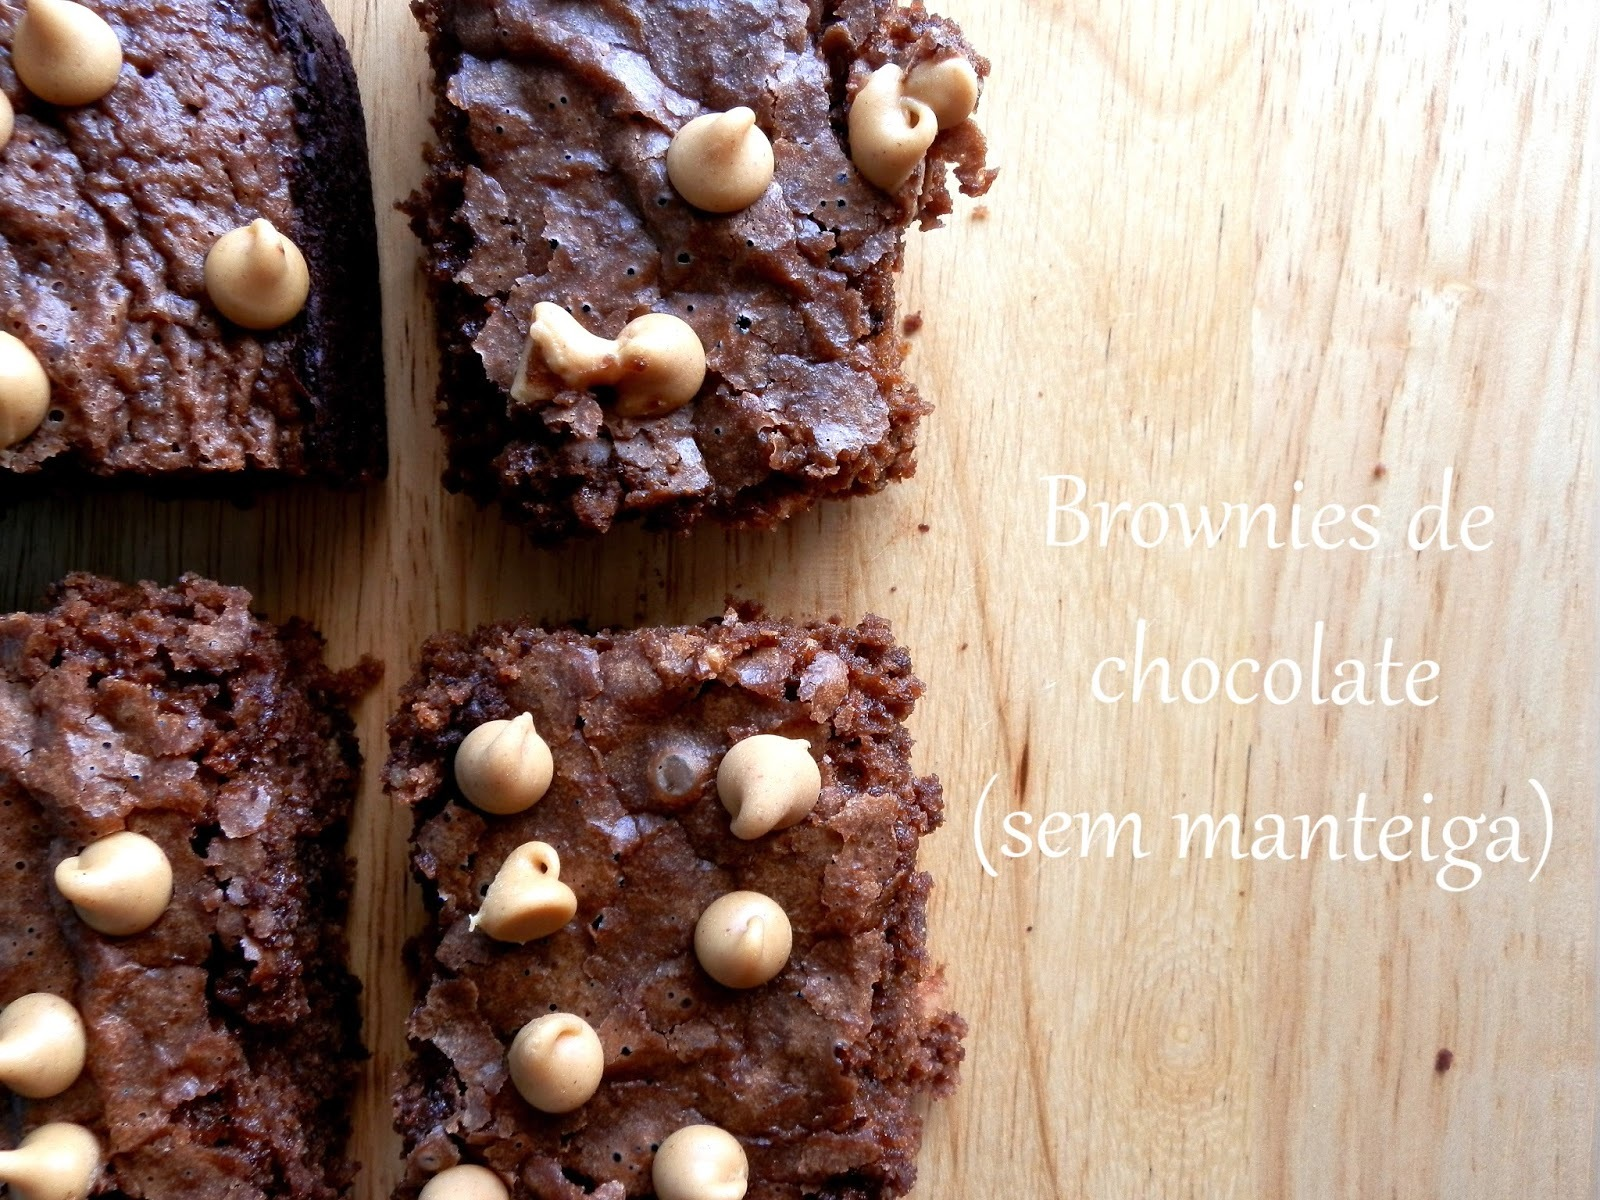 Brownies de chocolate {sem manteiga}